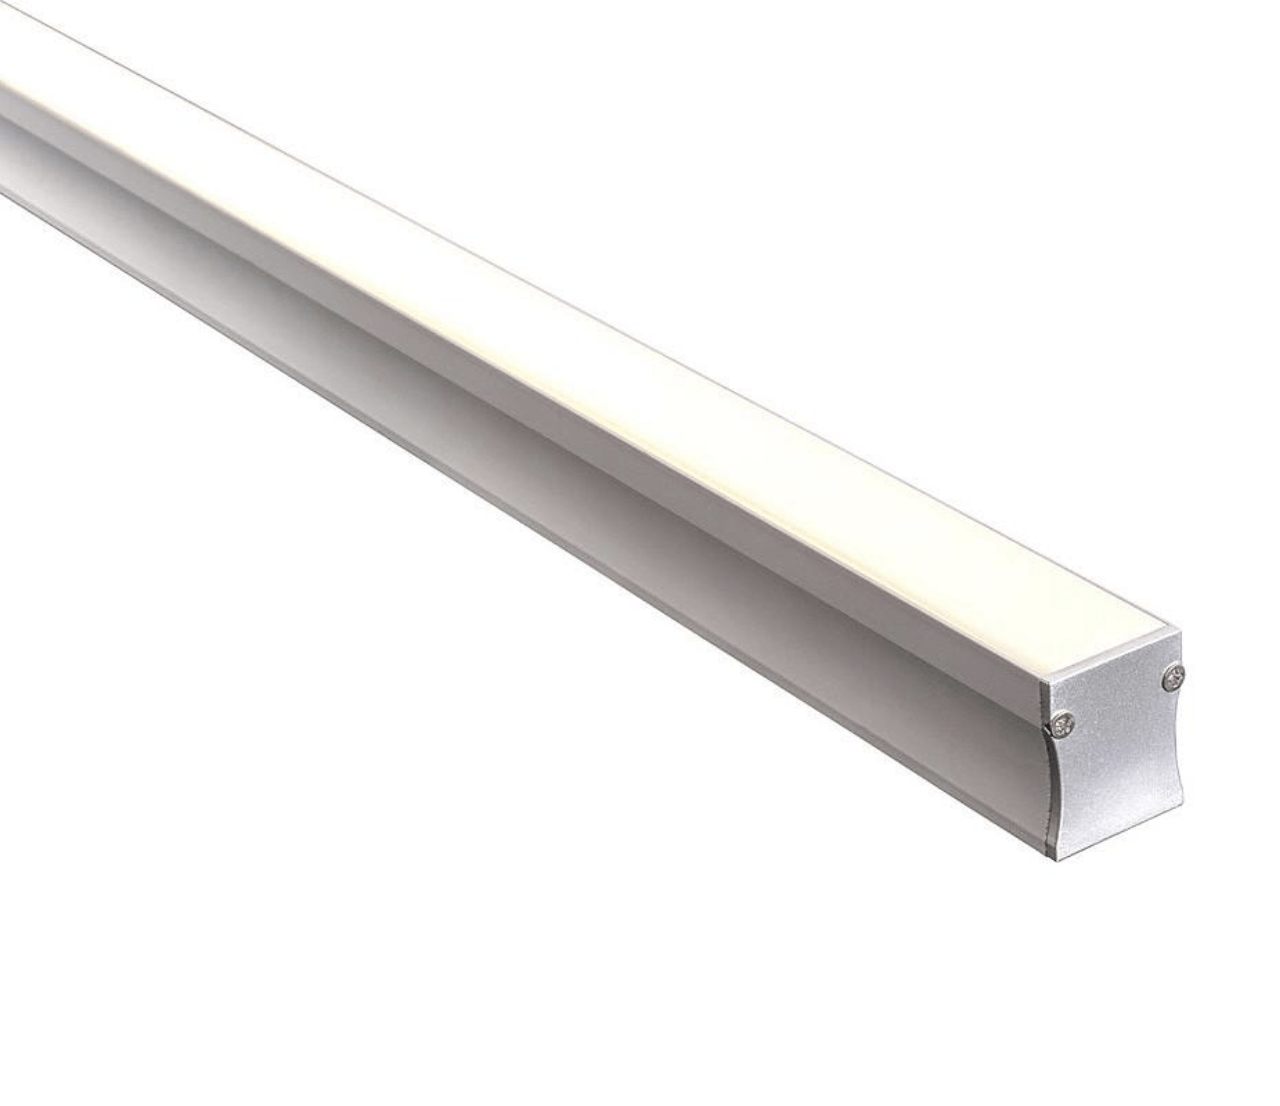 Profiles Surface Mounted Profile - Deep Square - HV9693-2320 lighting shops lighting stores LED lights  lighting designer